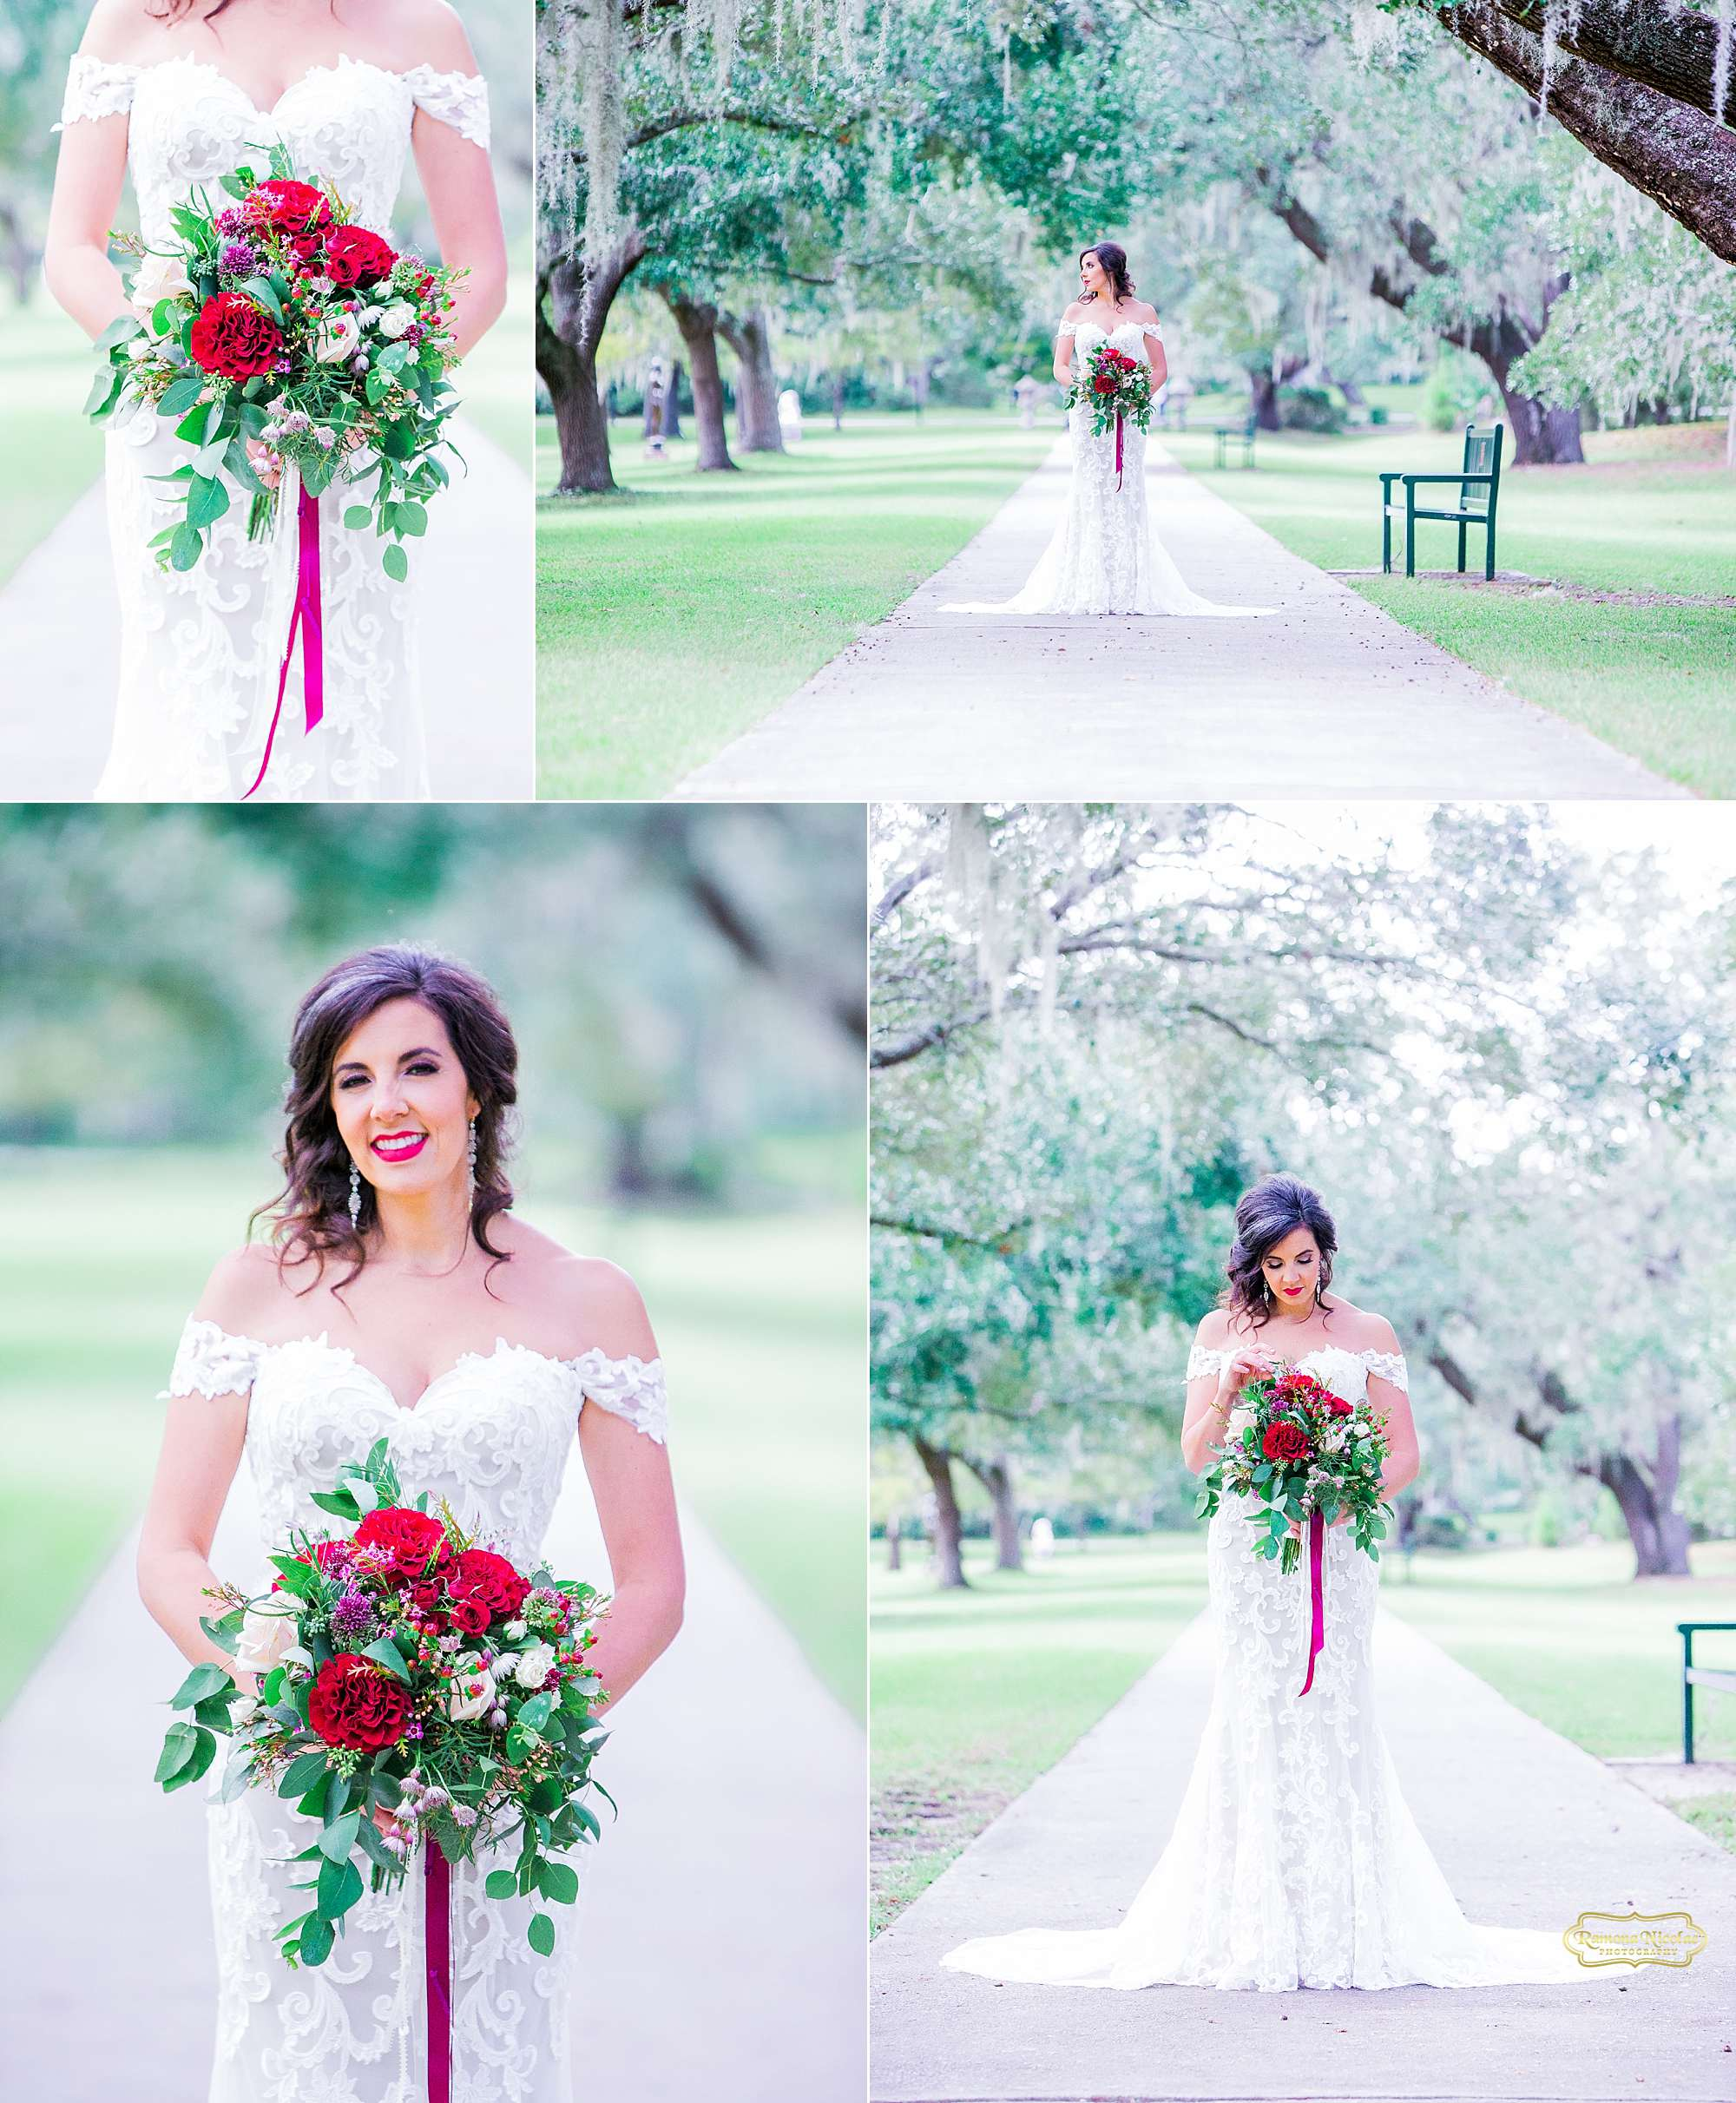 happy bride with red wedding bouquet at brookgreen gardens for bridal session with ramona nicolae photography-13.jpg